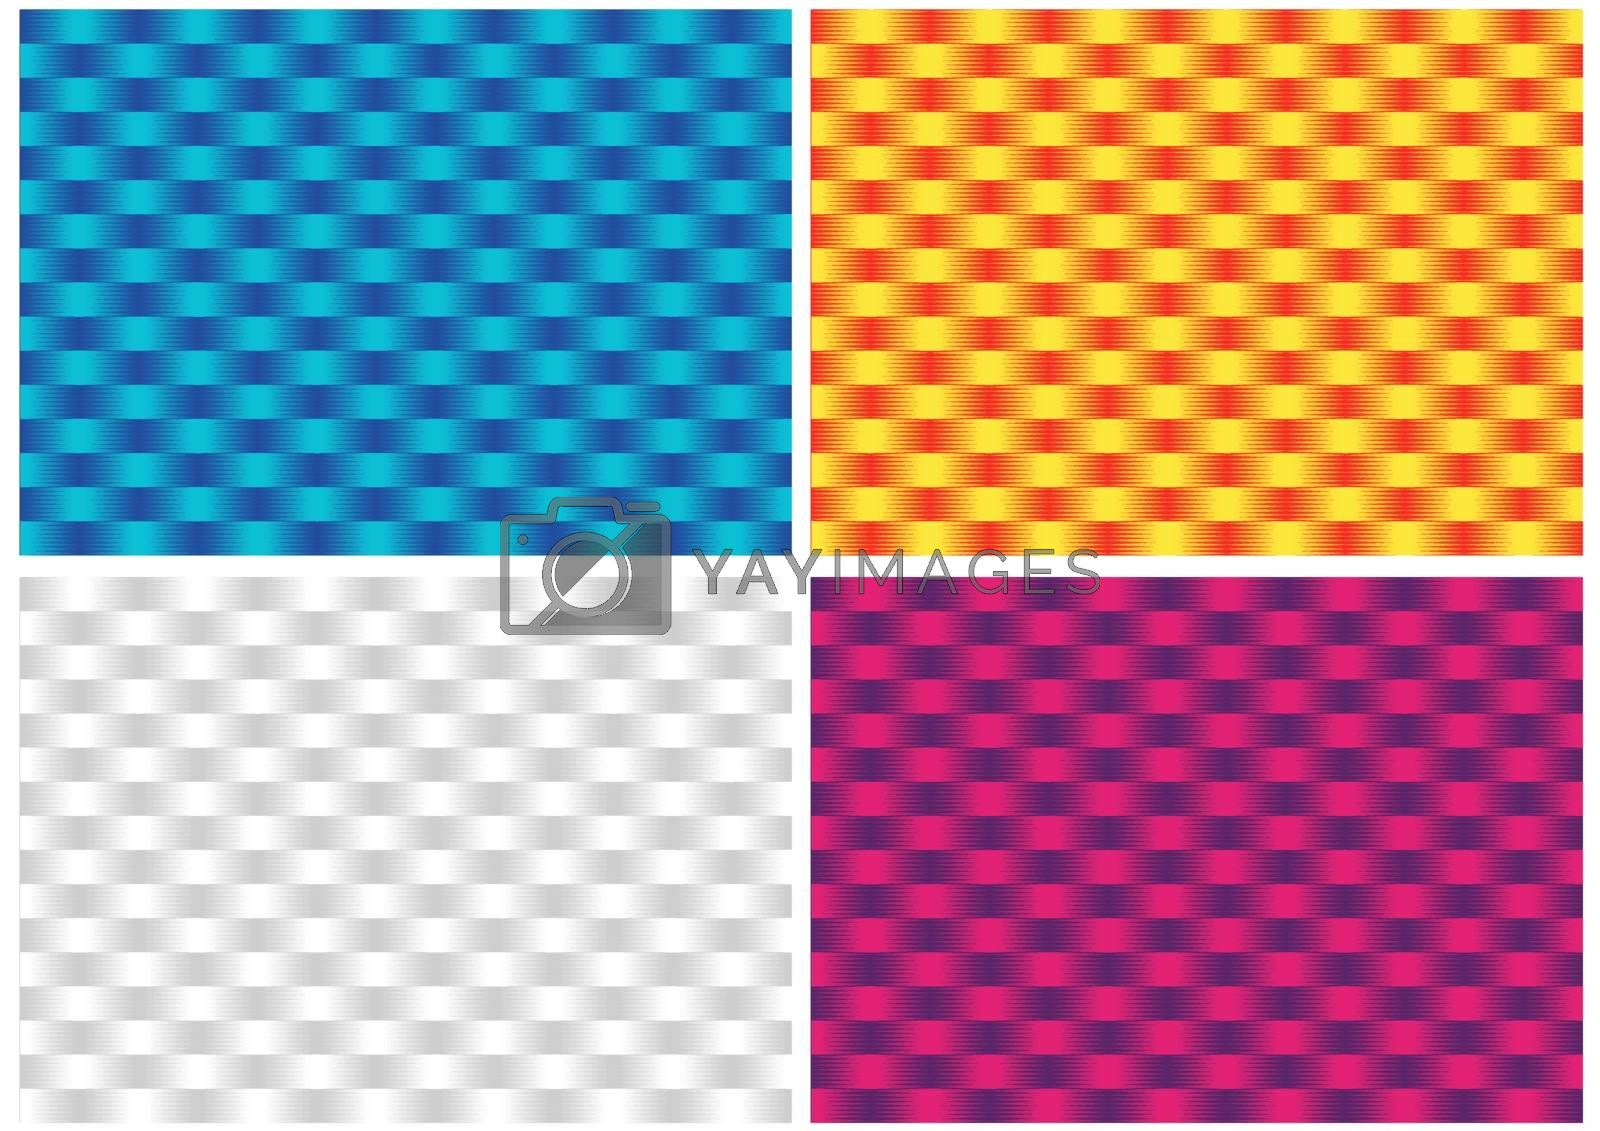 Abstract Geometric Gradient Textures - Set of Colored Background Illustrations for Your Graphic Projects, Vector